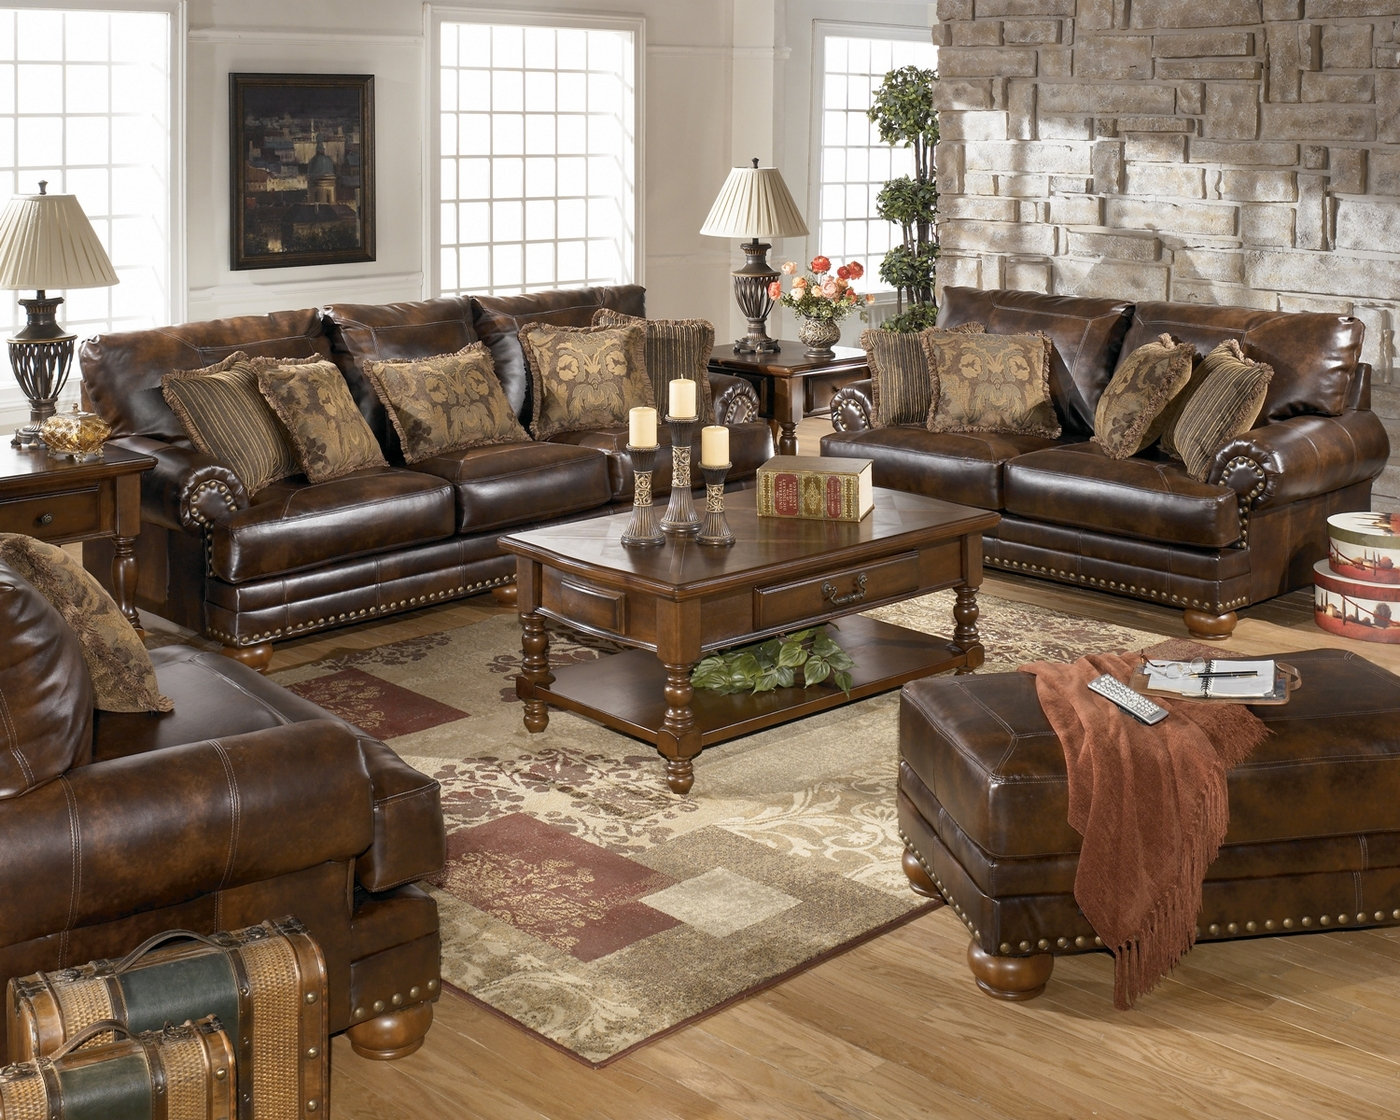 Leather Living Room Chair Antique Leather Sofa Traditional Living Room Furniture Set